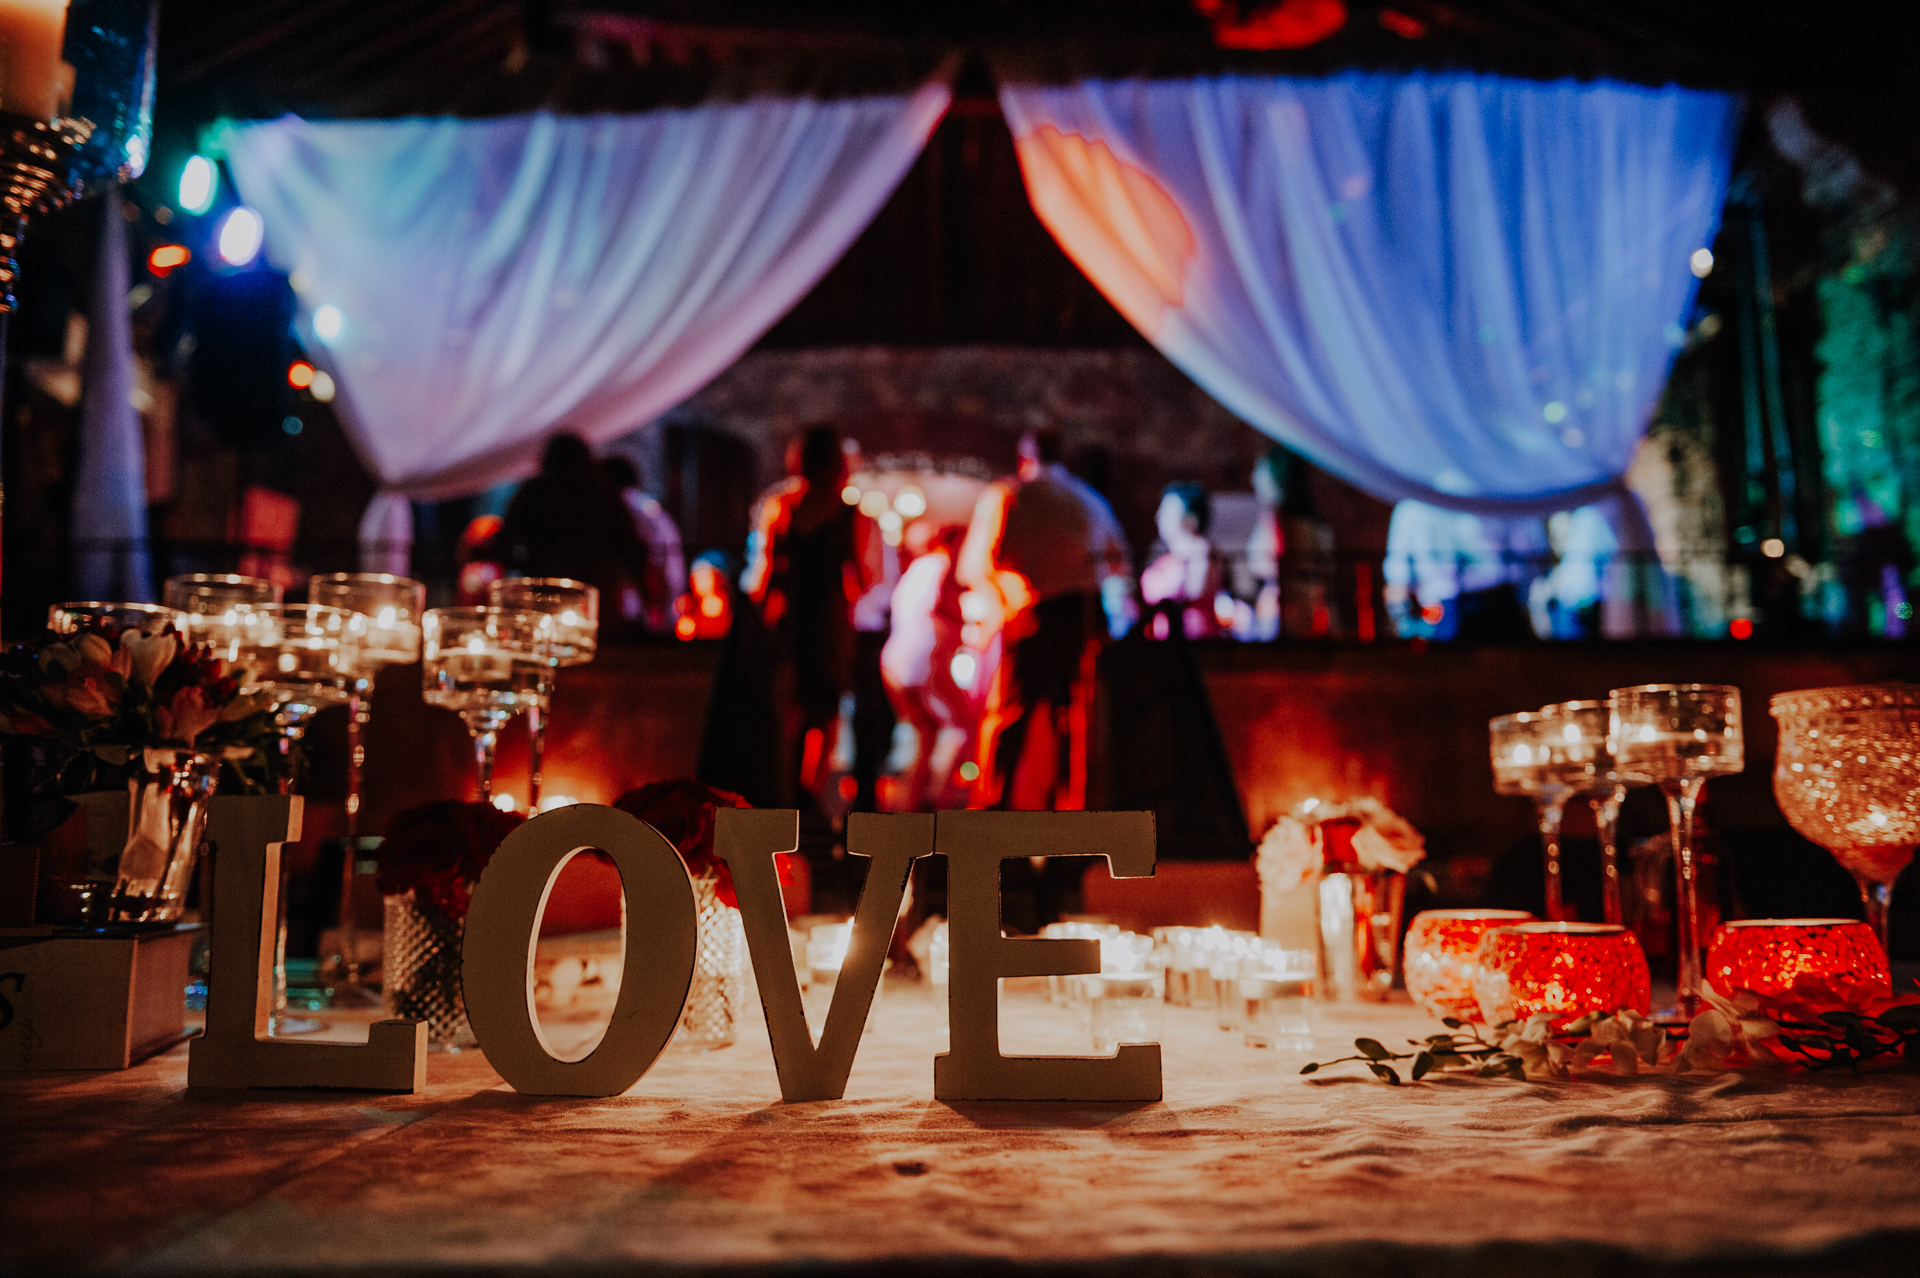 Destination Wedding Photography - Alenquer, Portugal | Basking in the glow of colorful lights and with romance in the air